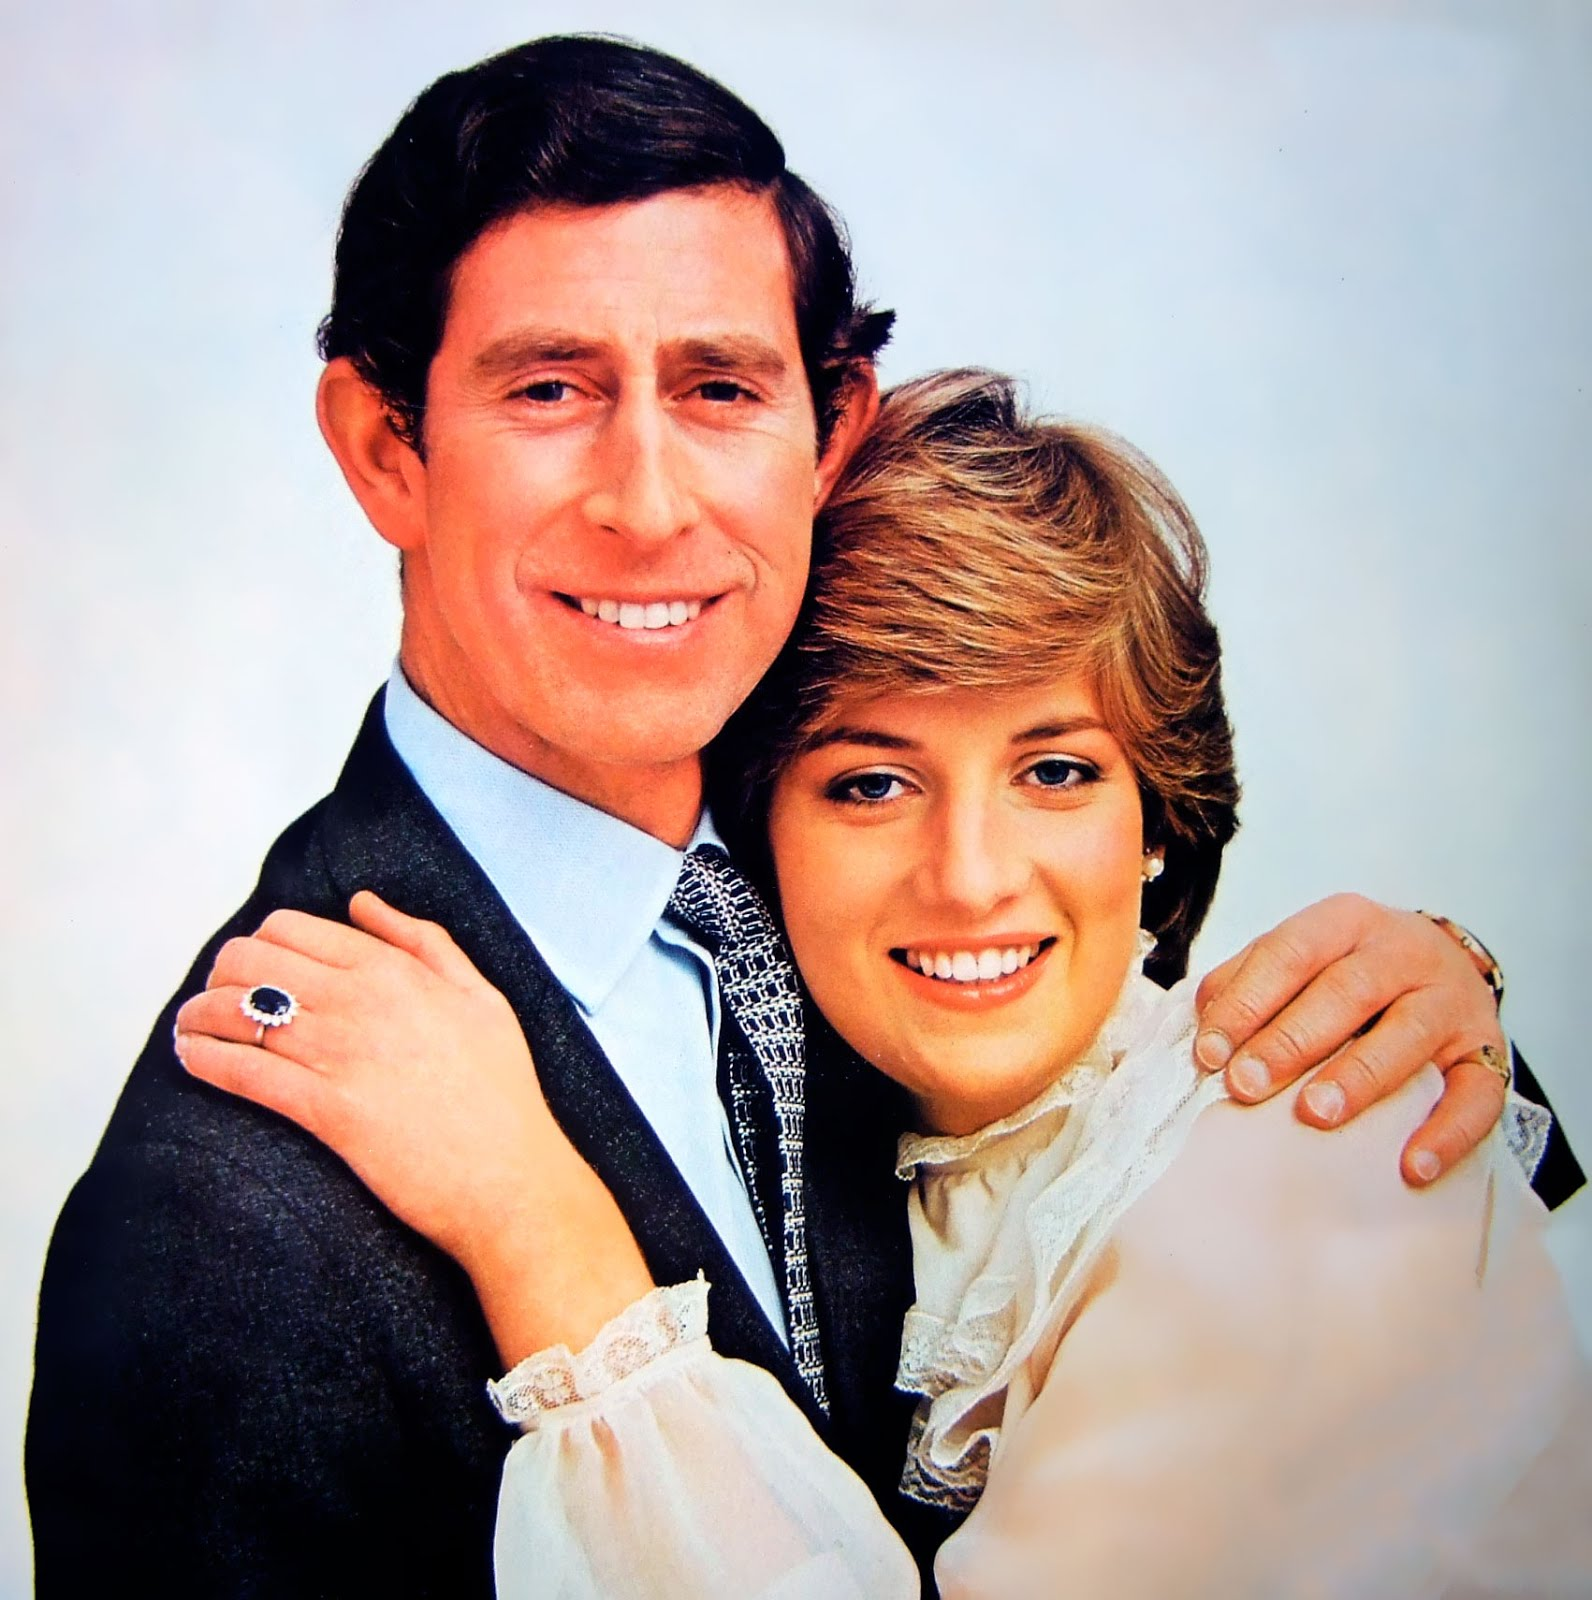 http://4.bp.blogspot.com/-9K0xmvSRaWk/UPZgSmS1NUI/AAAAAAAAU5c/B6NFFRb9F-s/s1600/Prince-Charles-and-Princess-Diana.jpg